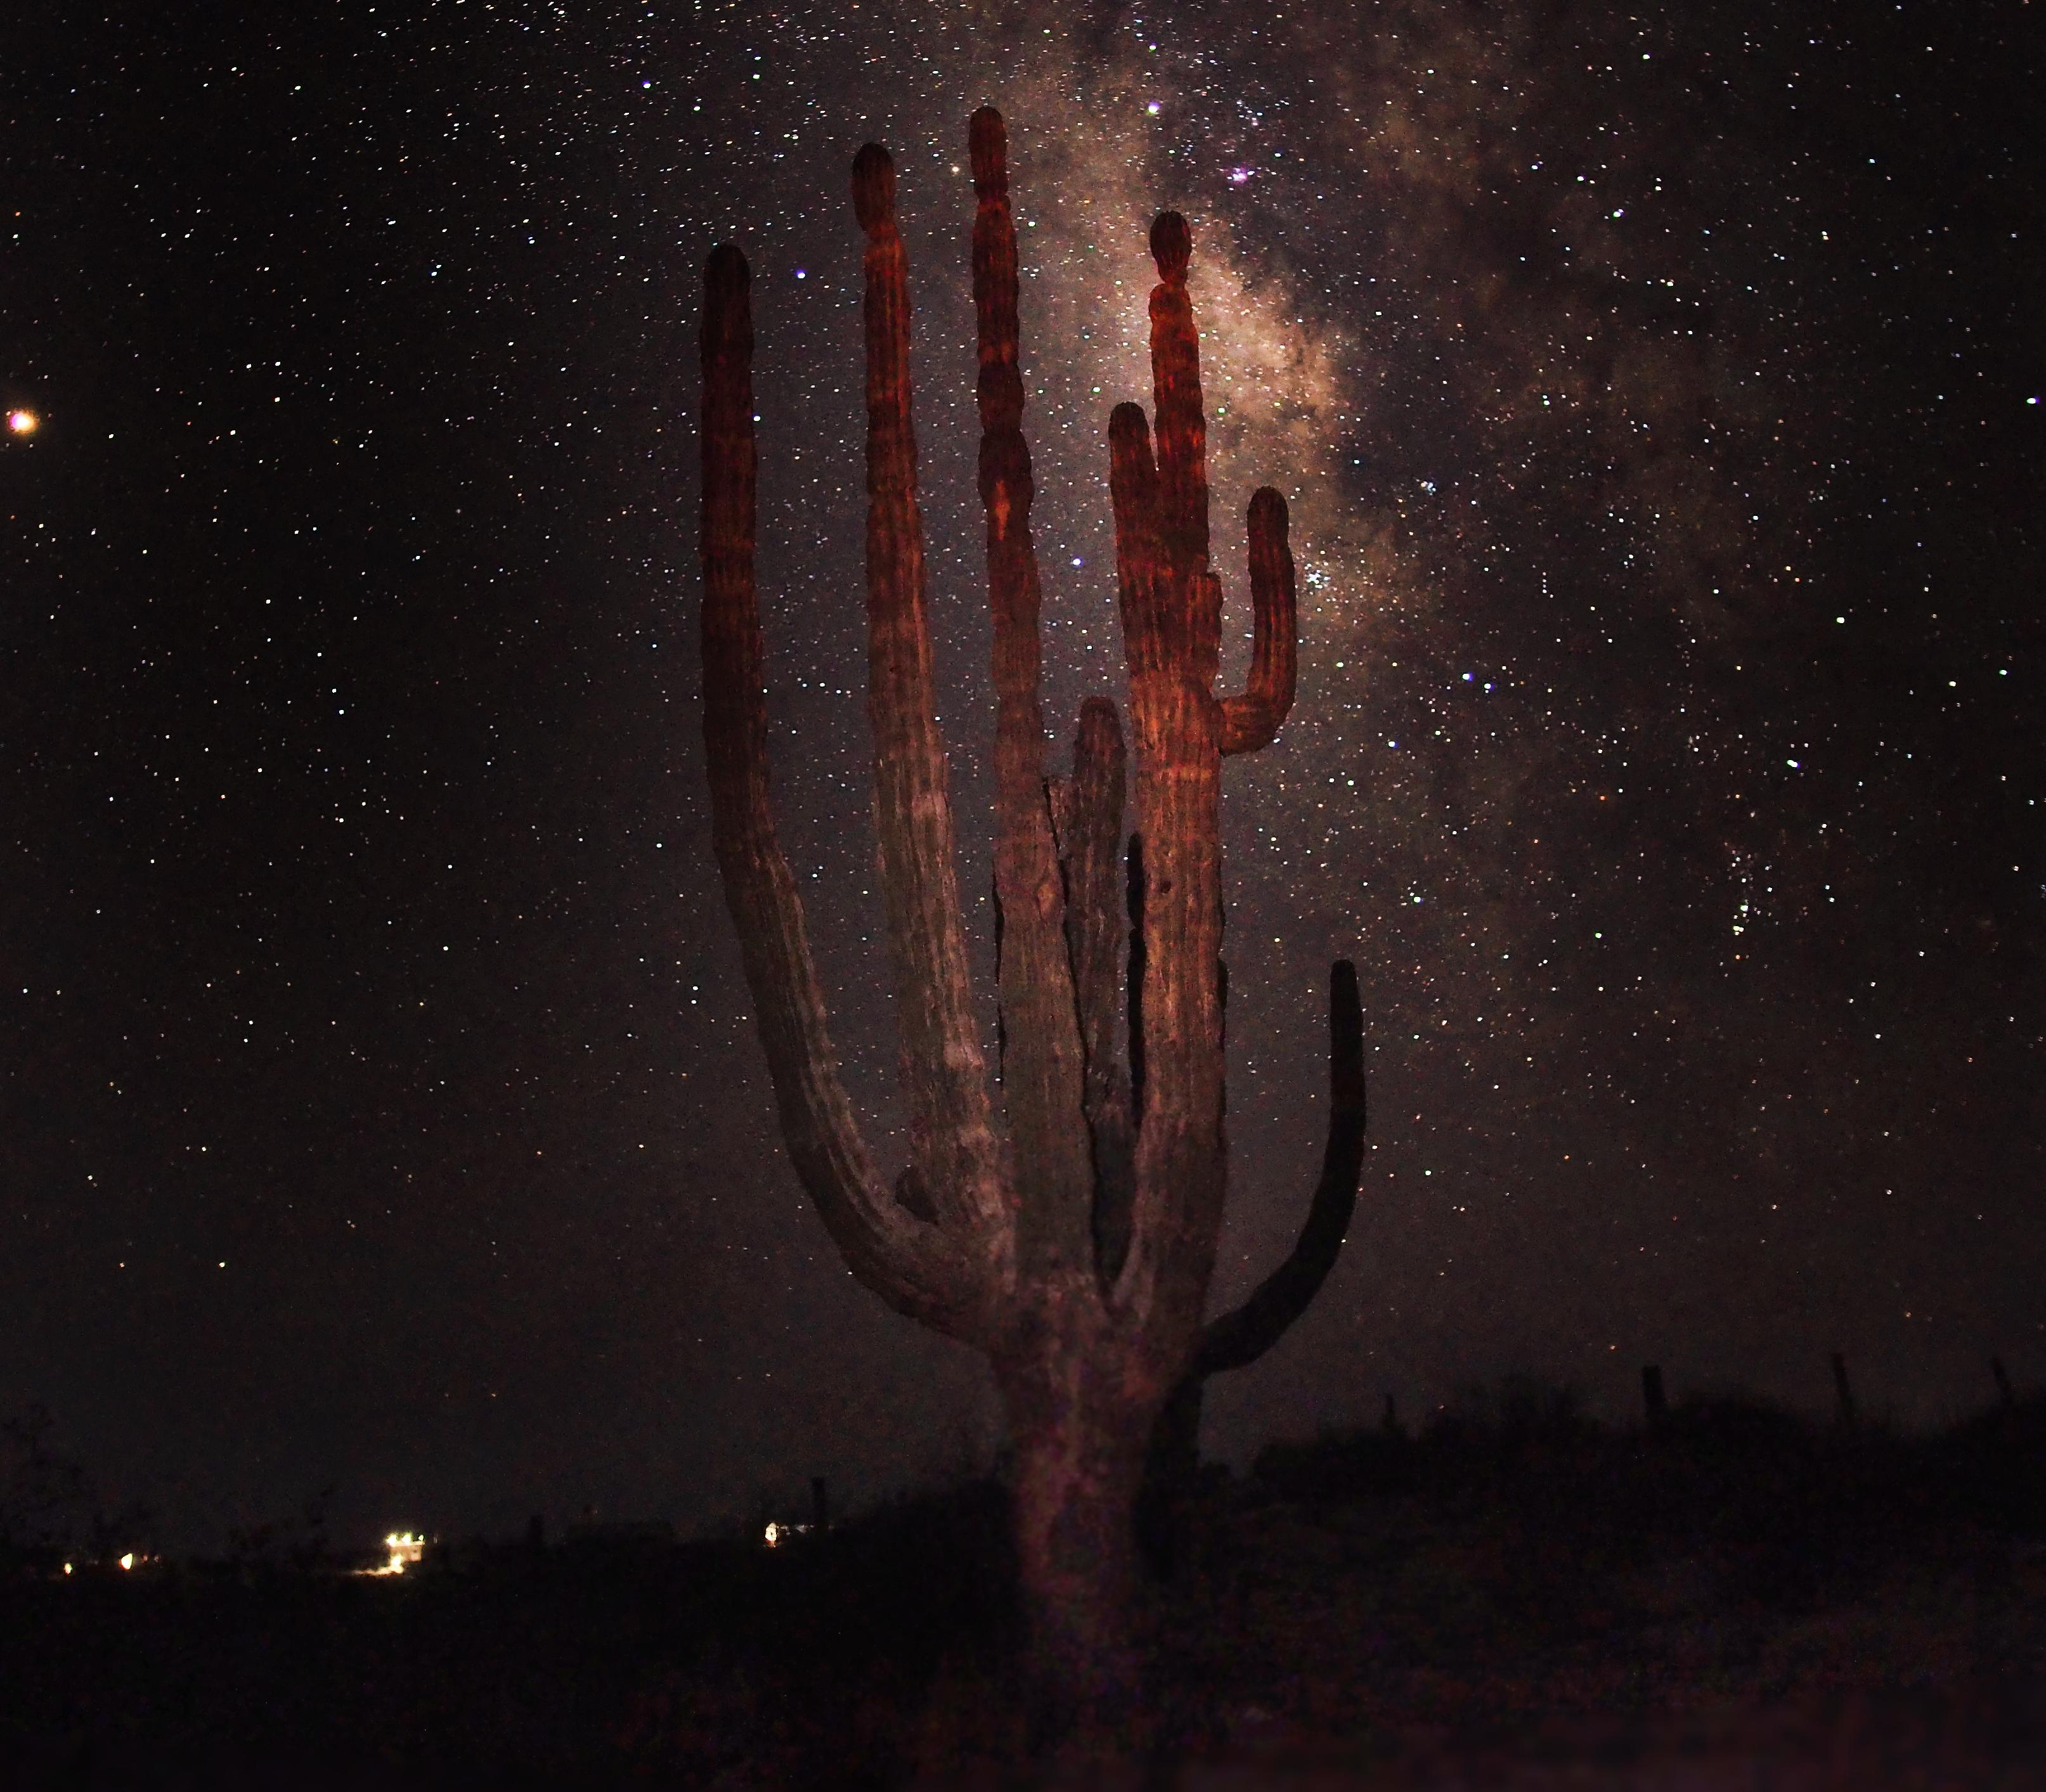 giant cactus at night